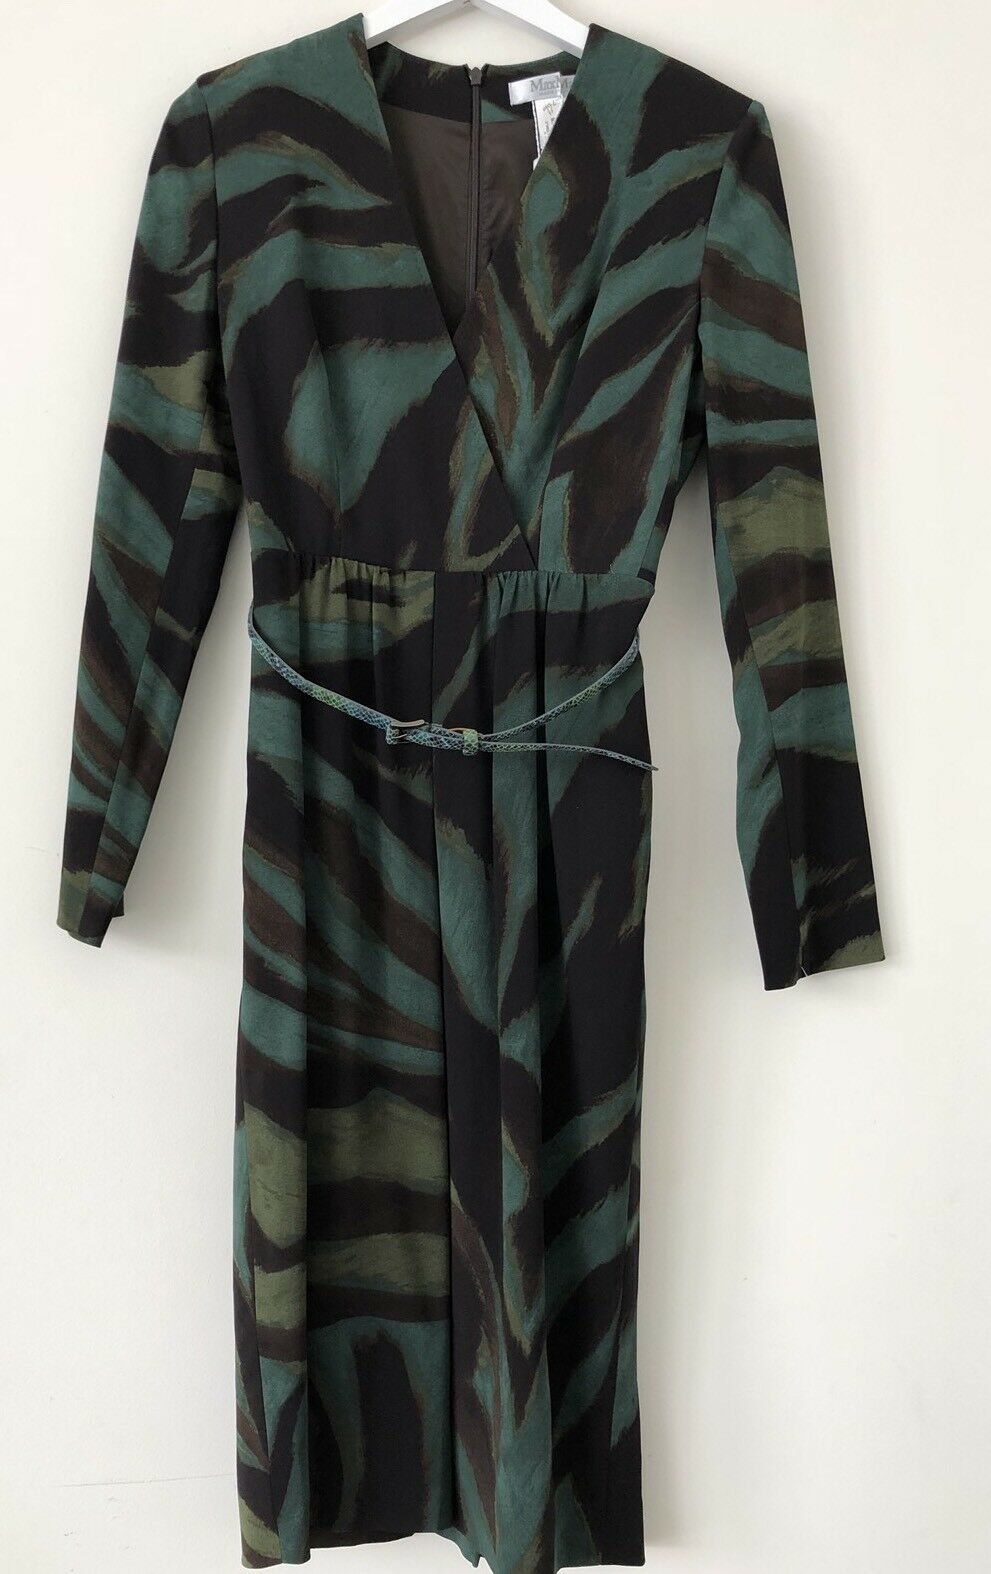 Max Mara Giglio Patterned Green Belted Sheath Work Dress, 44,  8